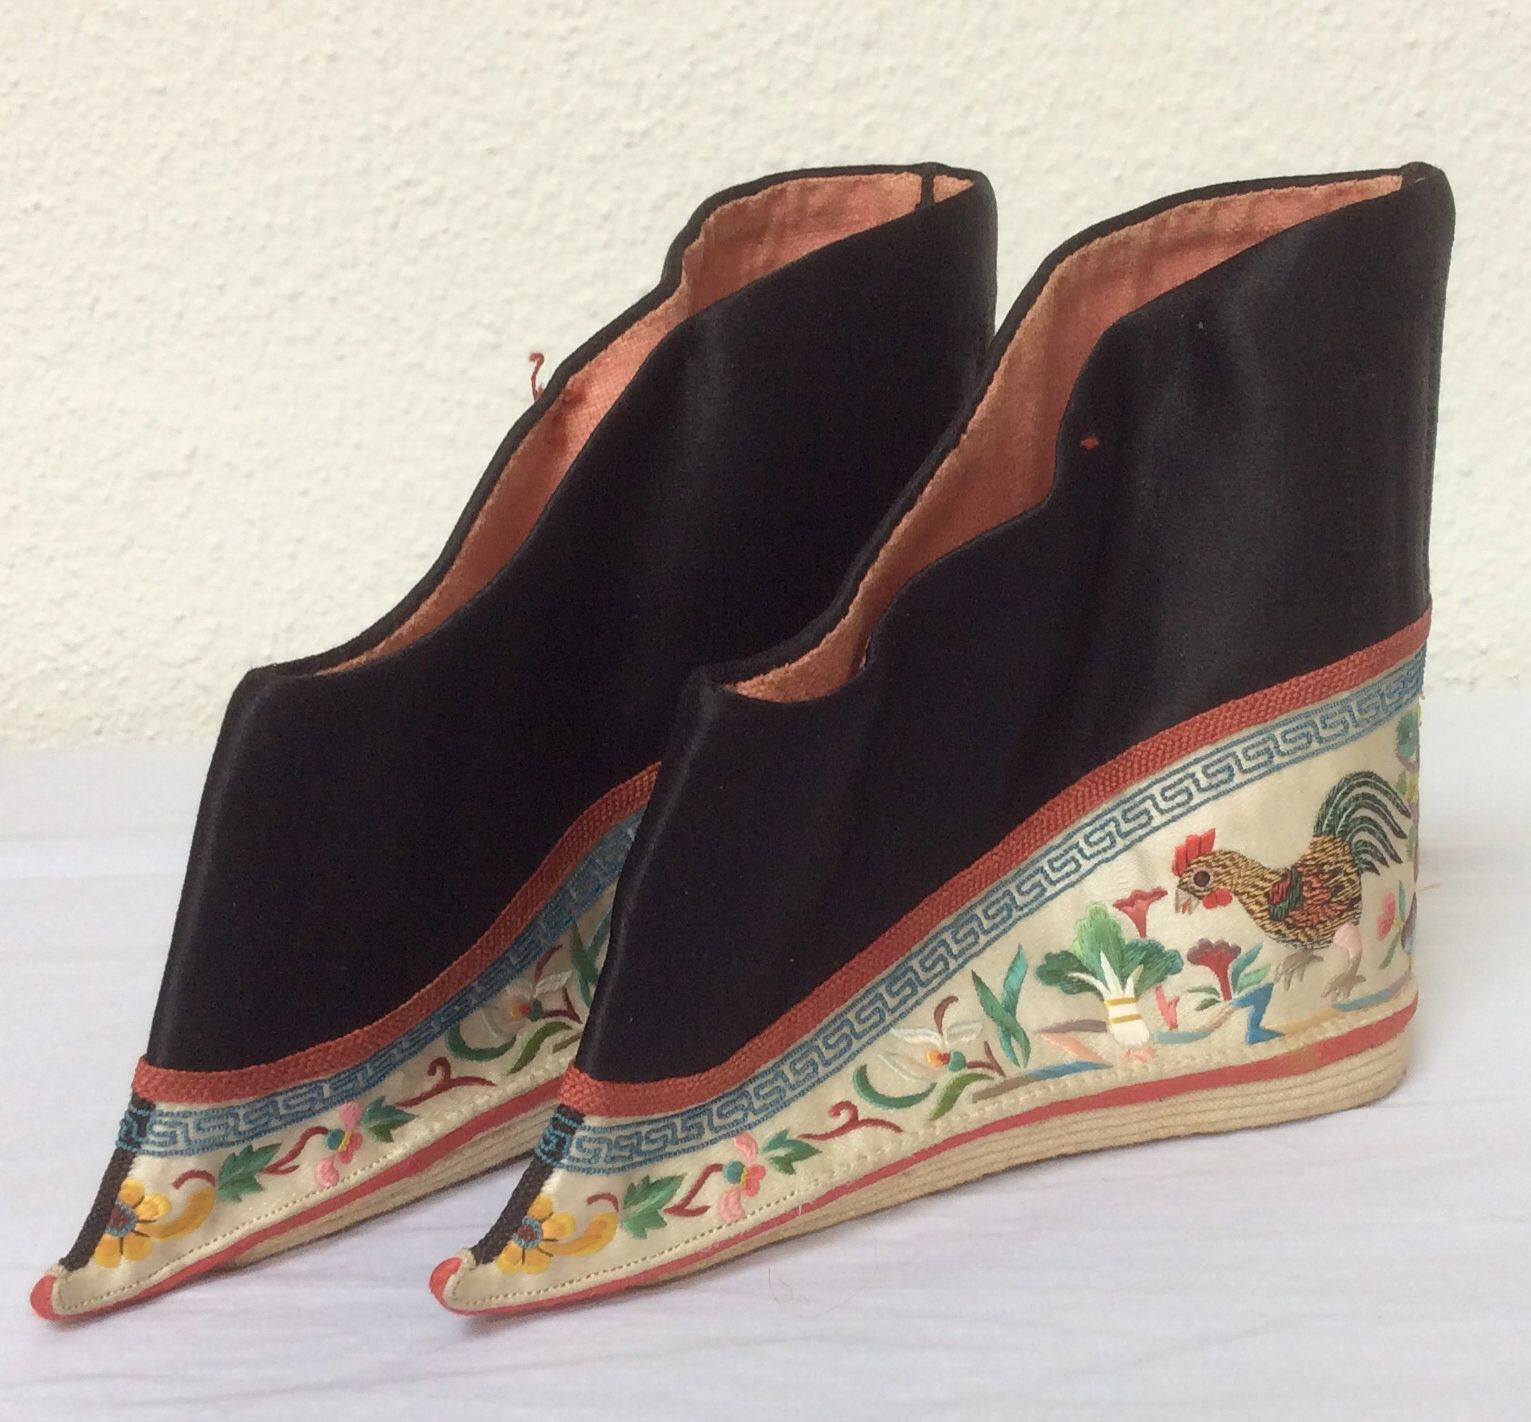 Rooster. My Collection. Bound Foot Shoes China Qing